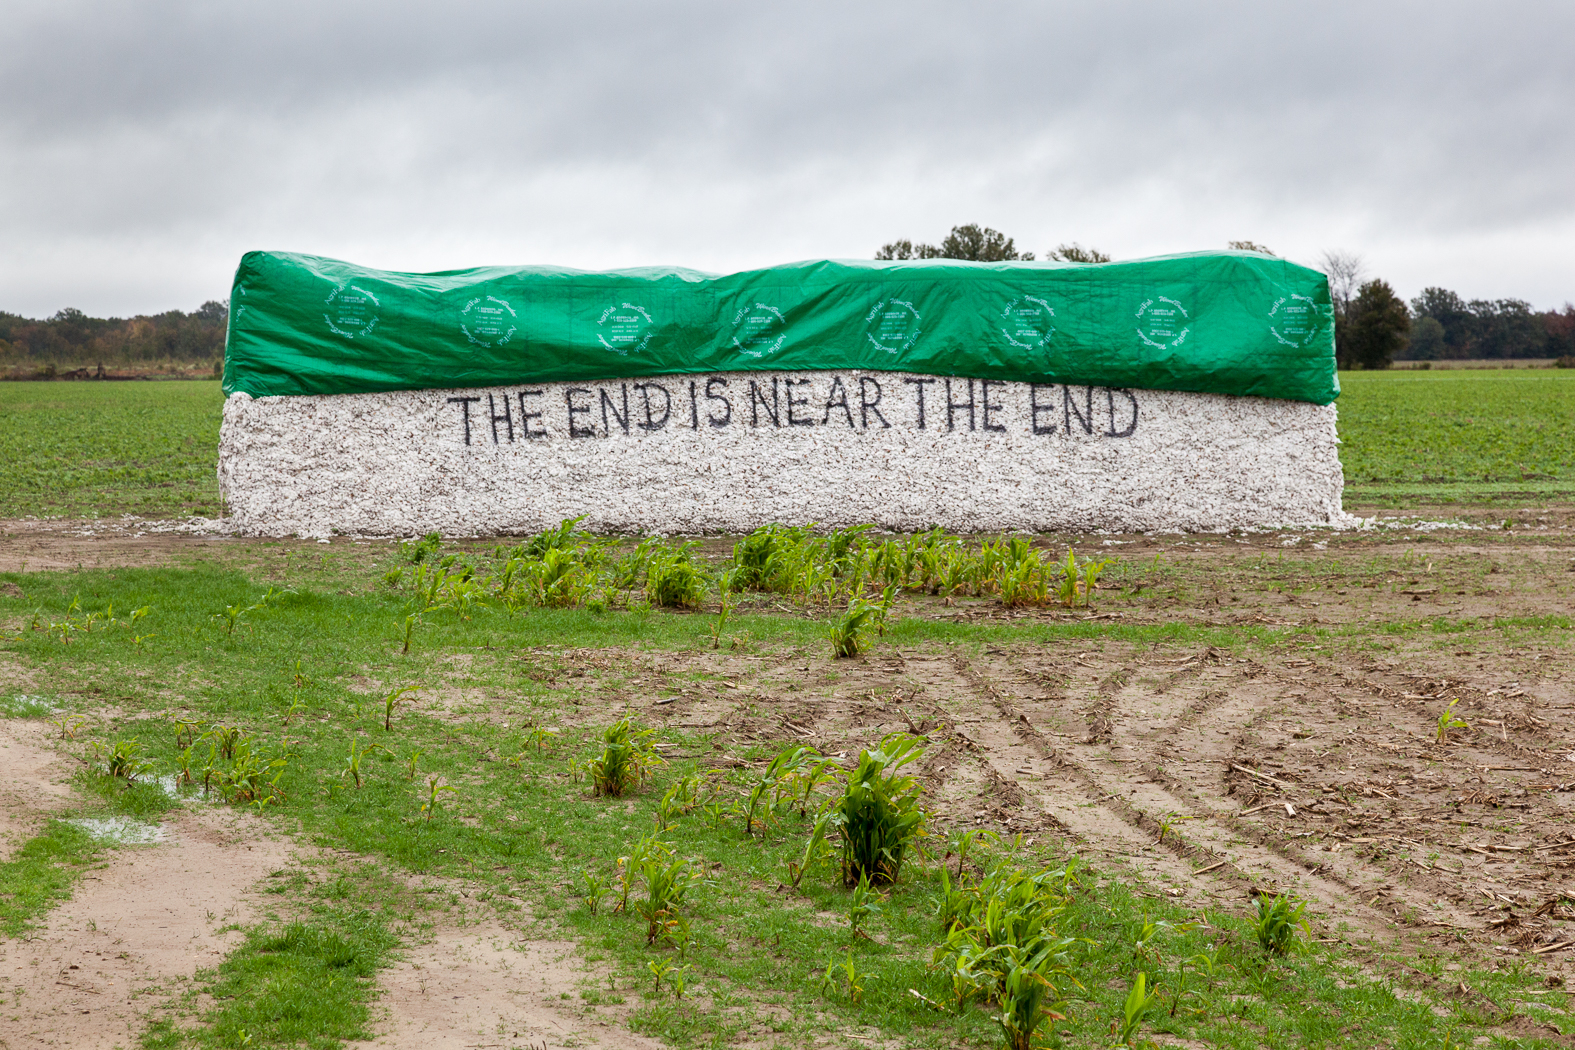 The End is Near the End, Clarksdale, MS 2012